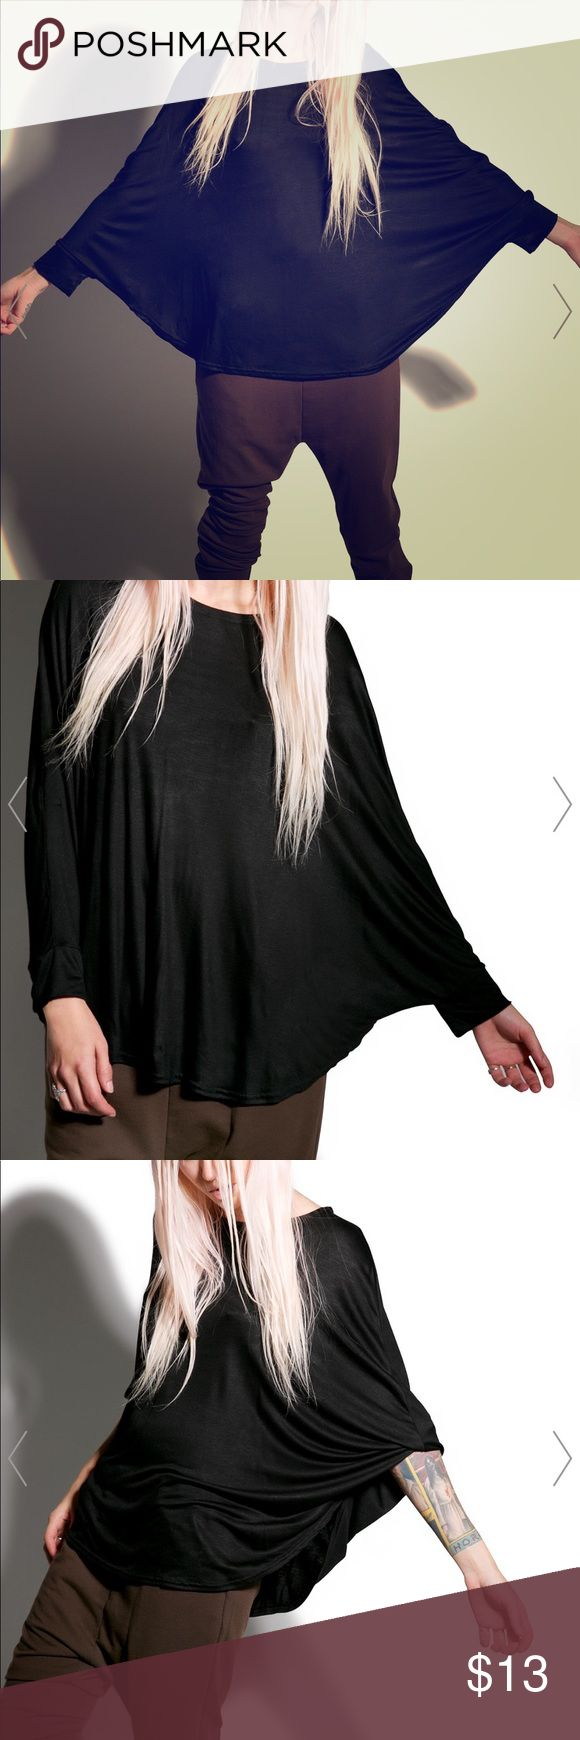 BLACK BATWING TOP DOLLS KILL Can't tell me nothin' batwing top is made of a Polyester blend with sikk long batwing sleeves, side slits, and a crazy drape that won't let anyone give a chance to even say somethin' Dolls Kill Tops Tees - Long Sleeve